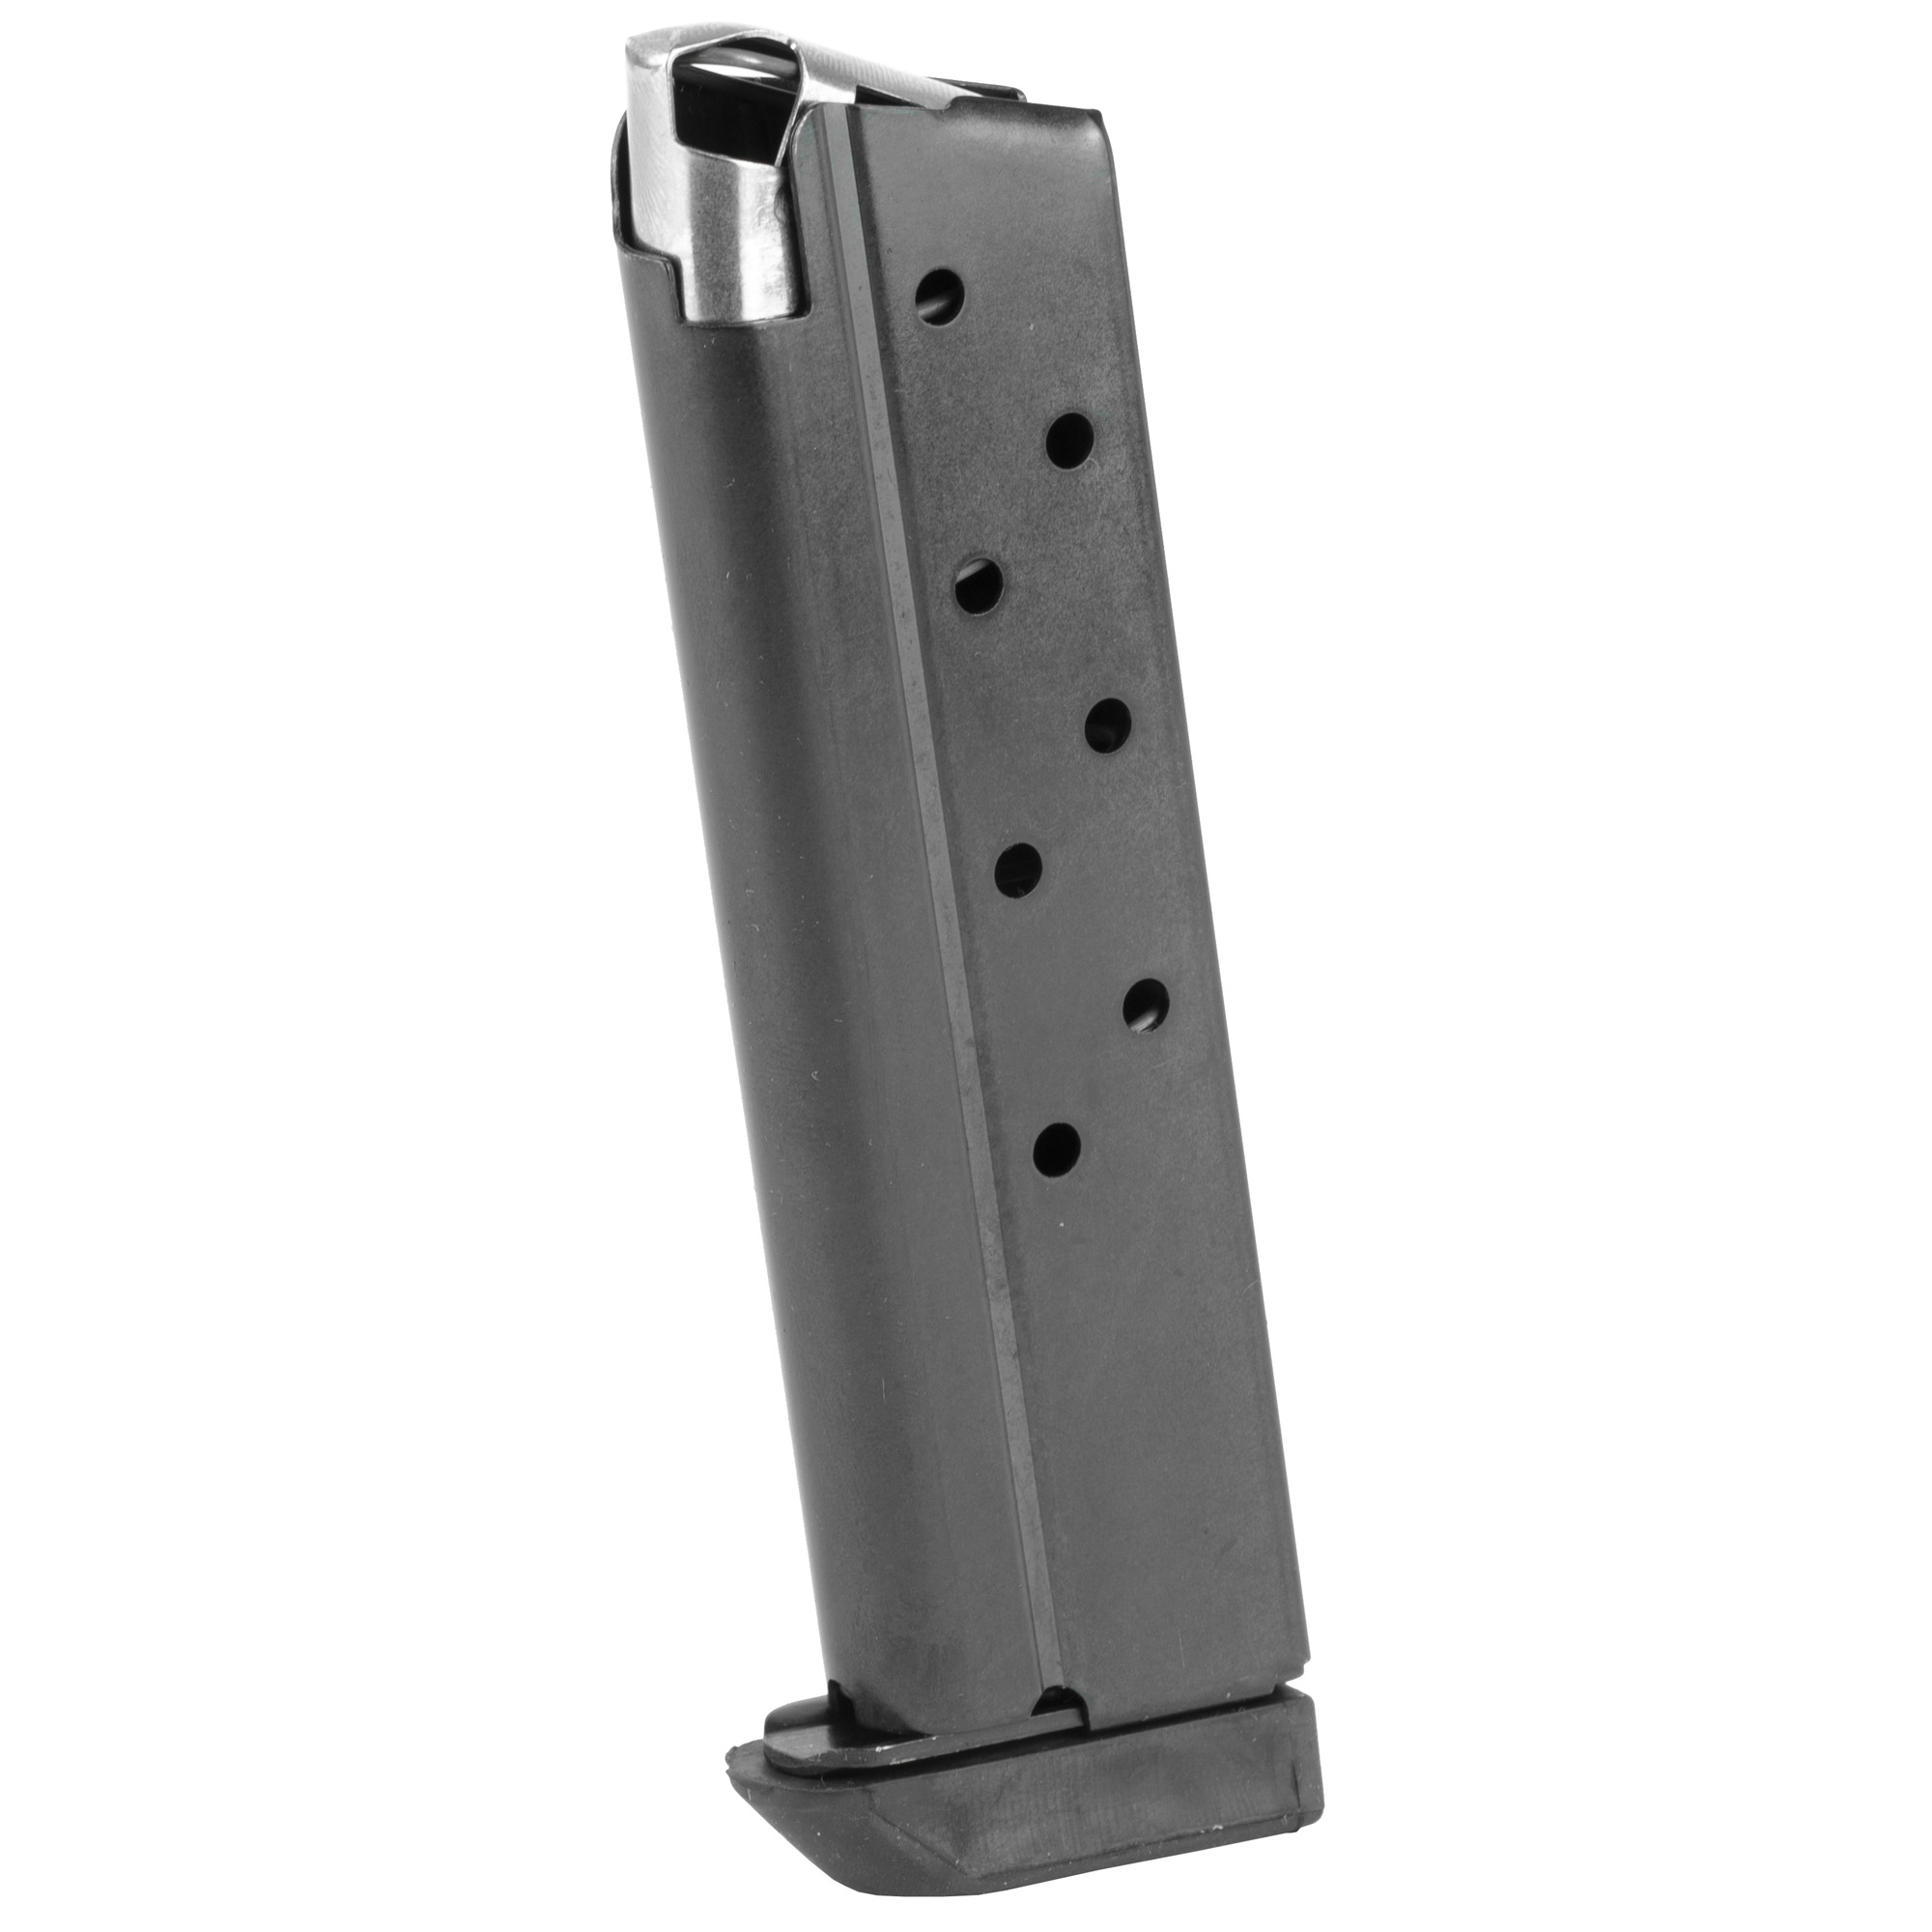 """The Rock Island Armory Full Sized Magazine is a standard factory replacement magazine. This magazine is for Full and Mid sized 1911 models chambered in 10mm and holds 8 rounds of ammunition. It is made of steel and is made to Armscor/Rock Island Armory specifications and tolerances"""" using the same manufacturing and materials as the original equipment magazines"""" ensuring perfect fit and operation."""